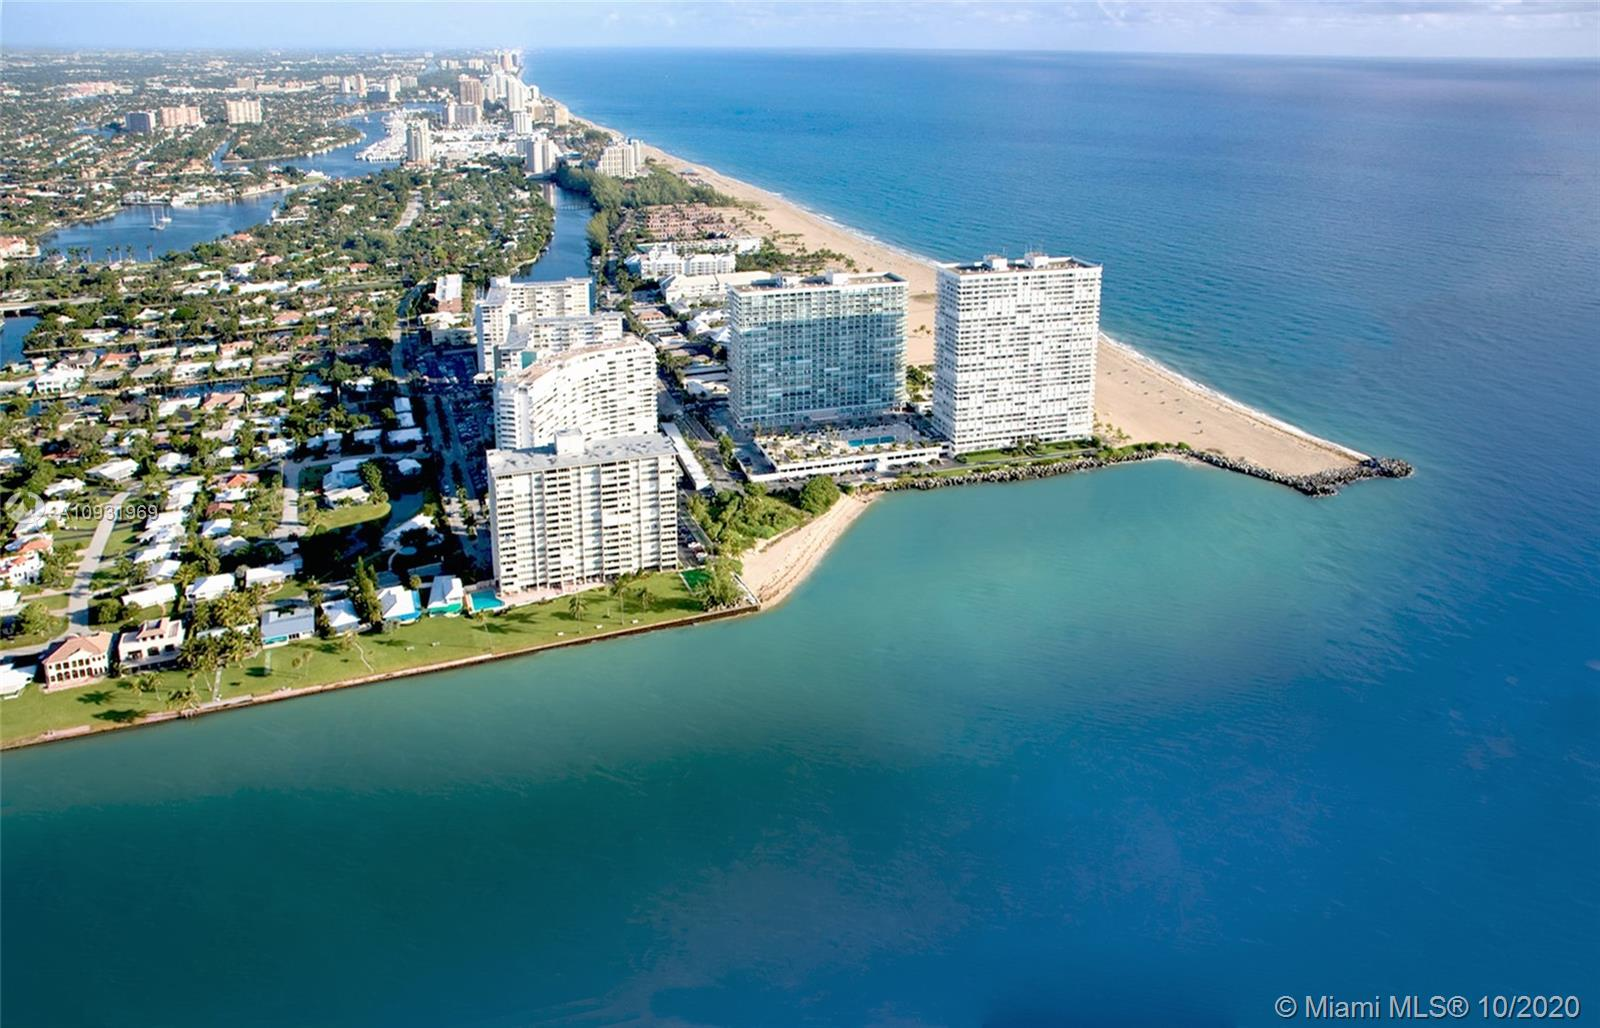 The only penthouse for sale at Point of Americas I.  Enjoy stunning direct ocean, inlet and cruise ship views from this oversized 1 BR/2 BA with 9 foot ceilings and desirable southern exposure.  Tastefully updated with new carpet, newer kitchen and baths and more.  Enjoy five-star resort amenities including a grand lobby, restaurant, fitness center, guest rooms, lush pools and cabanas on the widest beach in Fort Lauderdale.  Close proximity to restaurants and beach clubs and just minutes to downtown/Las Olas, Brightline, airport and all major roads.  Furnishings negotiable.